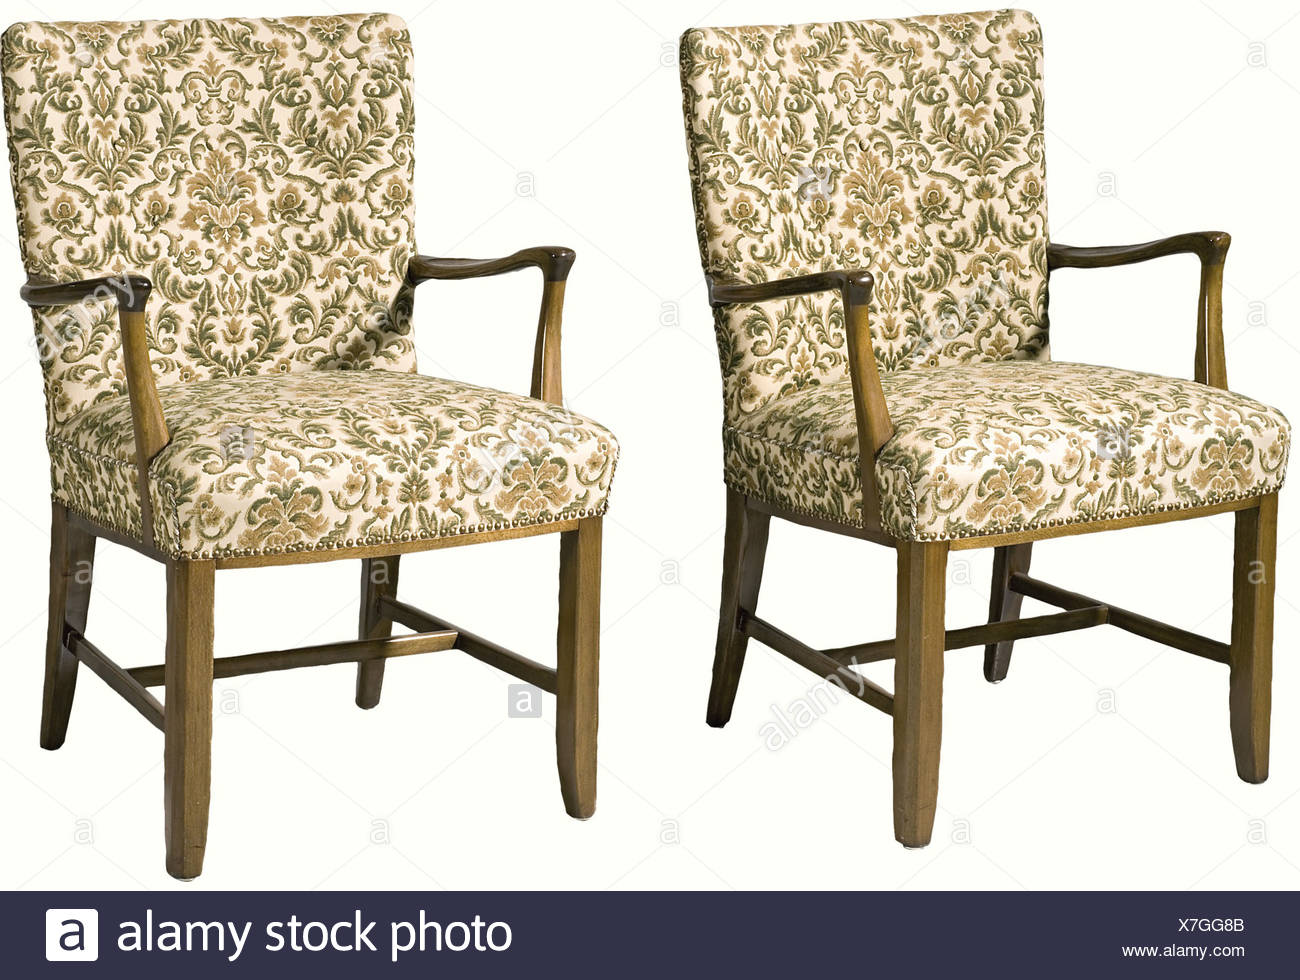 Adolf Hitler - two easy chairs from the 'Reichskanzlei', in Berlin., Made of beech wood in the same colour as the chest of drawers and table - covers replaced. That these chairs were formerly in the 'Reichskanzlei' in Berlin can not be authenticated by other similar chairs, through pictures or from other sources. However, the connection to the 'Reichskanzlei' must be considered likely, as the chairs are of the same provenance as the other pieces of furniture which can definitely be ascribed to this place. historic, historical, 1930s, 1930s, 20th century, NS, Na, Additional-Rights-Clearances-NA Stockbild